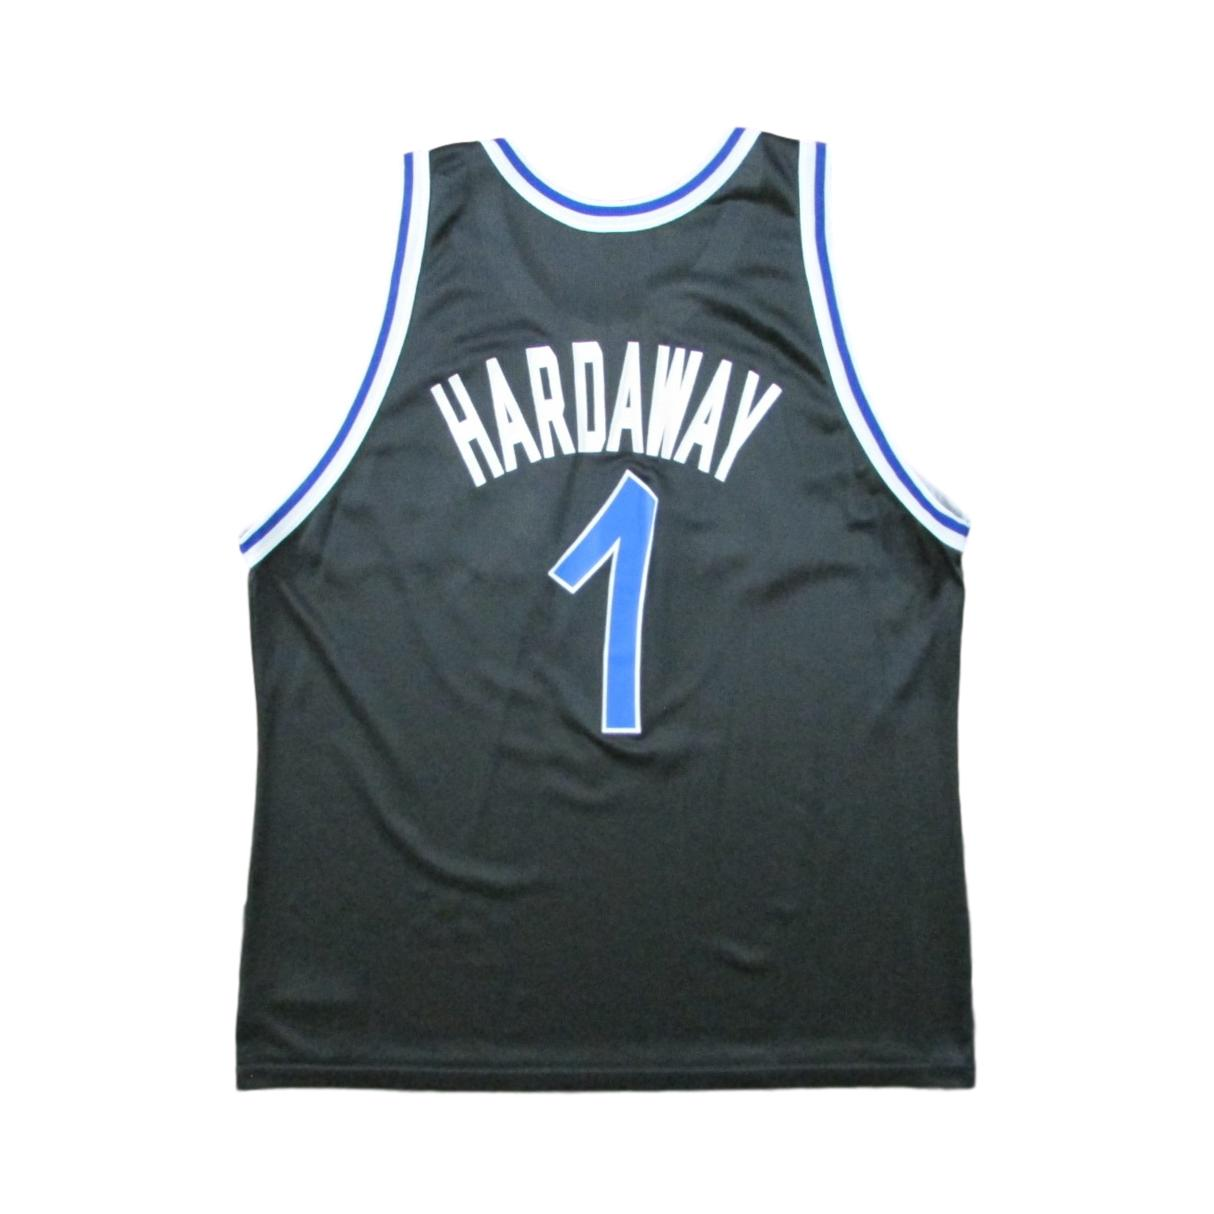 Orlando Magic Anfernee Penny Hardaway Basketball Champion Jersey Sz 48